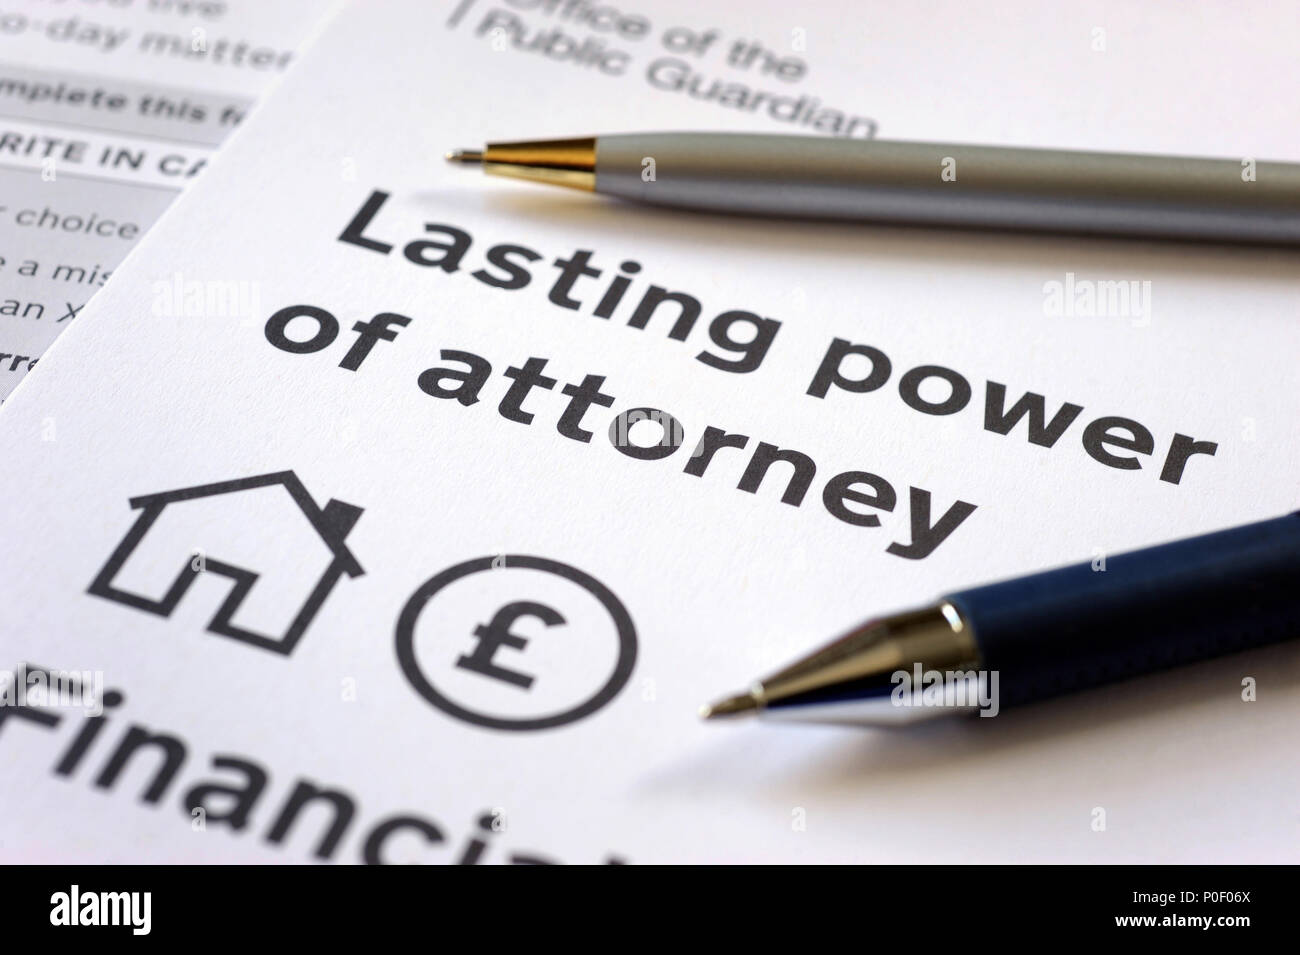 LASTING POWER OF ATTORNEY FORMS WITH PENS RE OFFICE OF THE PUBLIC GUARDIAN DEATH WILLS MAKING A WILL FAMILY UK - Stock Image